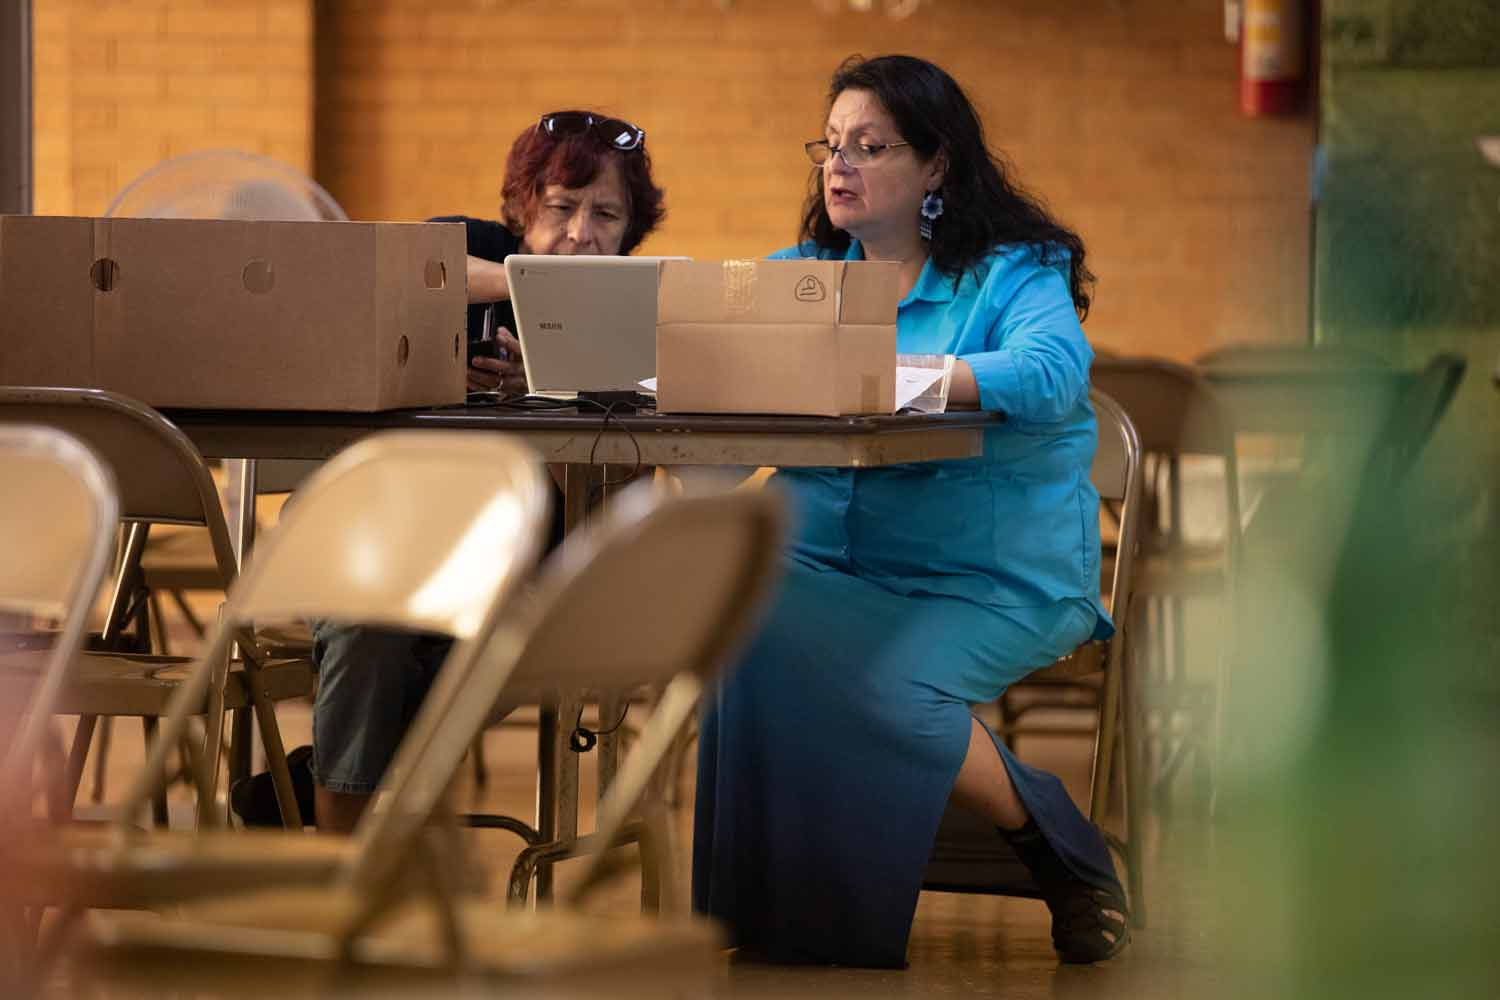 Delia Barajas works on a laptop in a church basement with a volunteer.